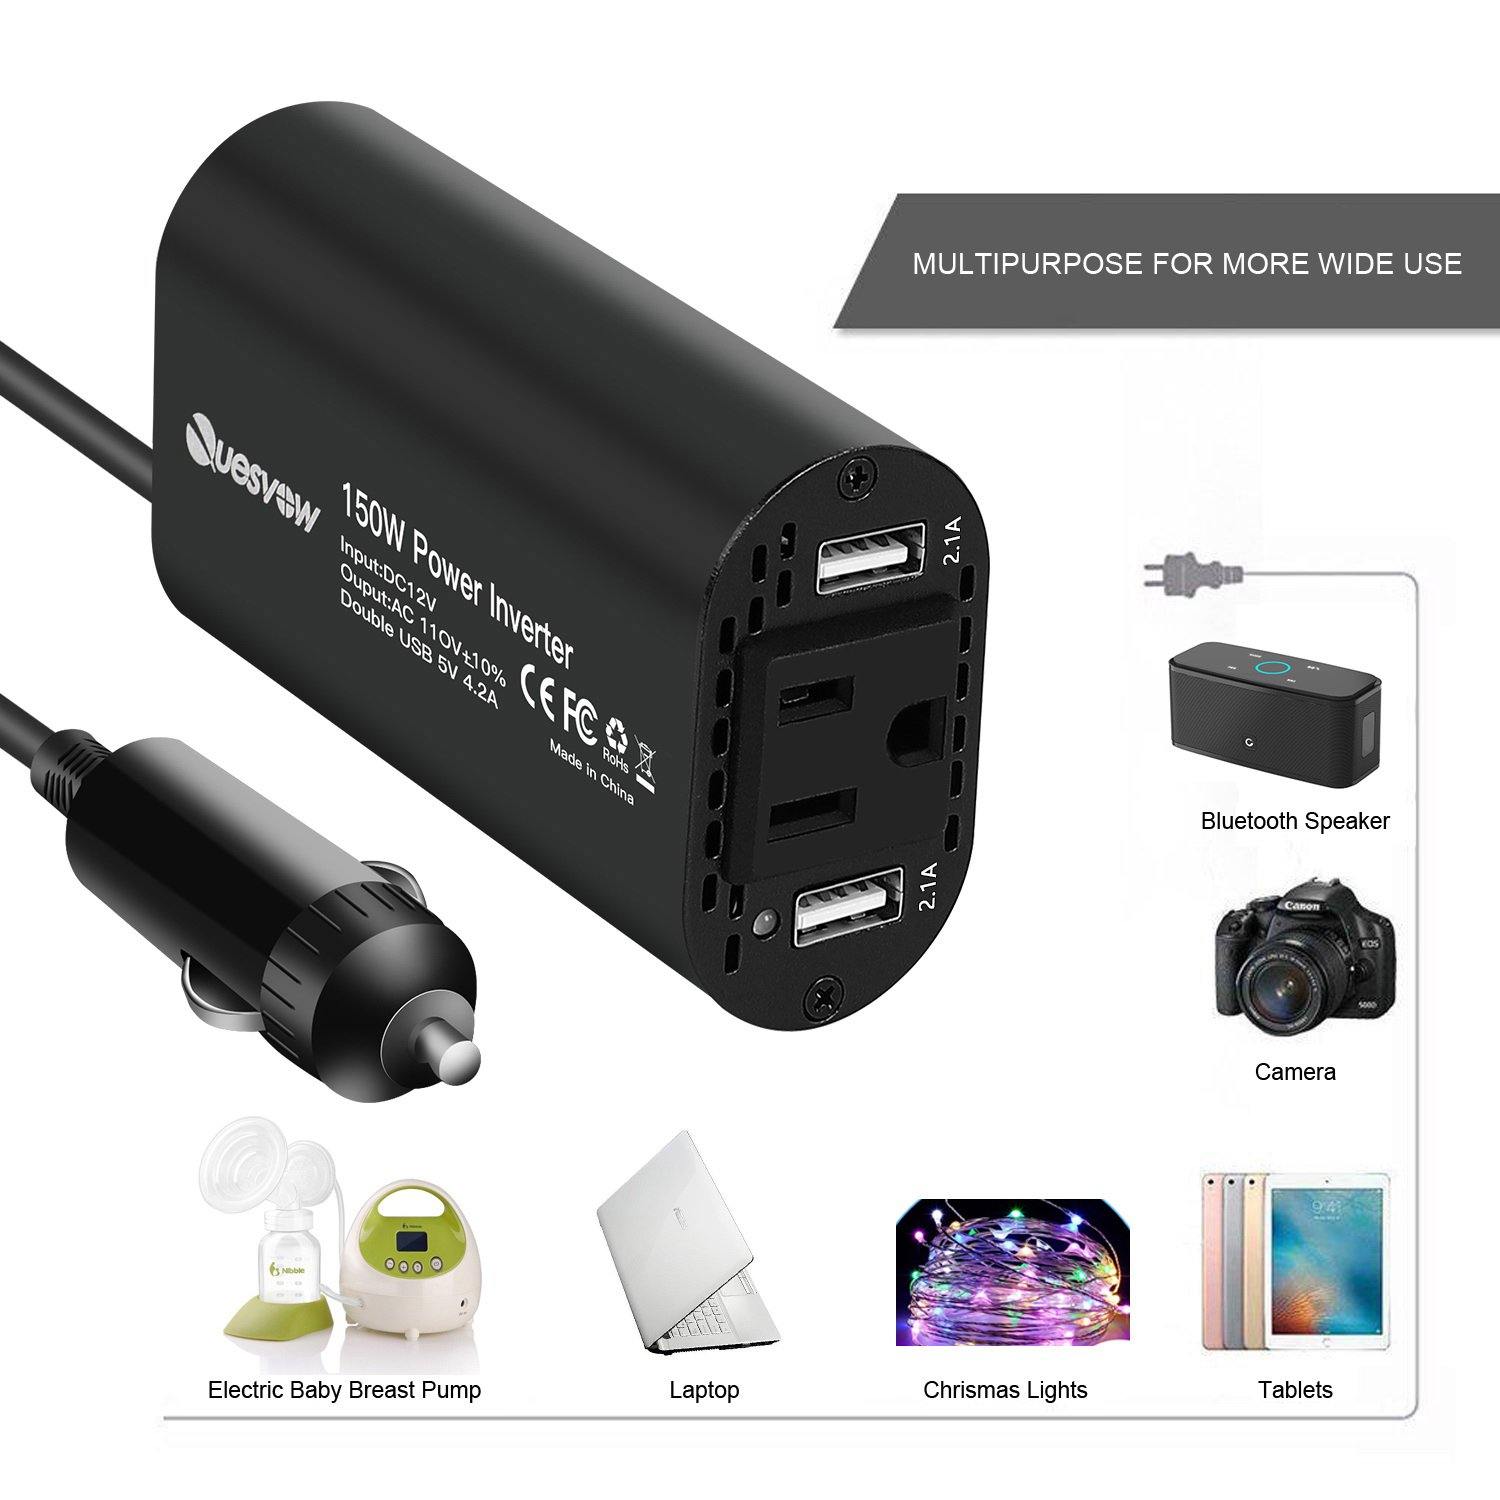 Quesvow 150W Car Power Inverter DC 12V to 110V AC Converter with 4.2A Dual USB Charger-Black by Quesvow (Image #3)